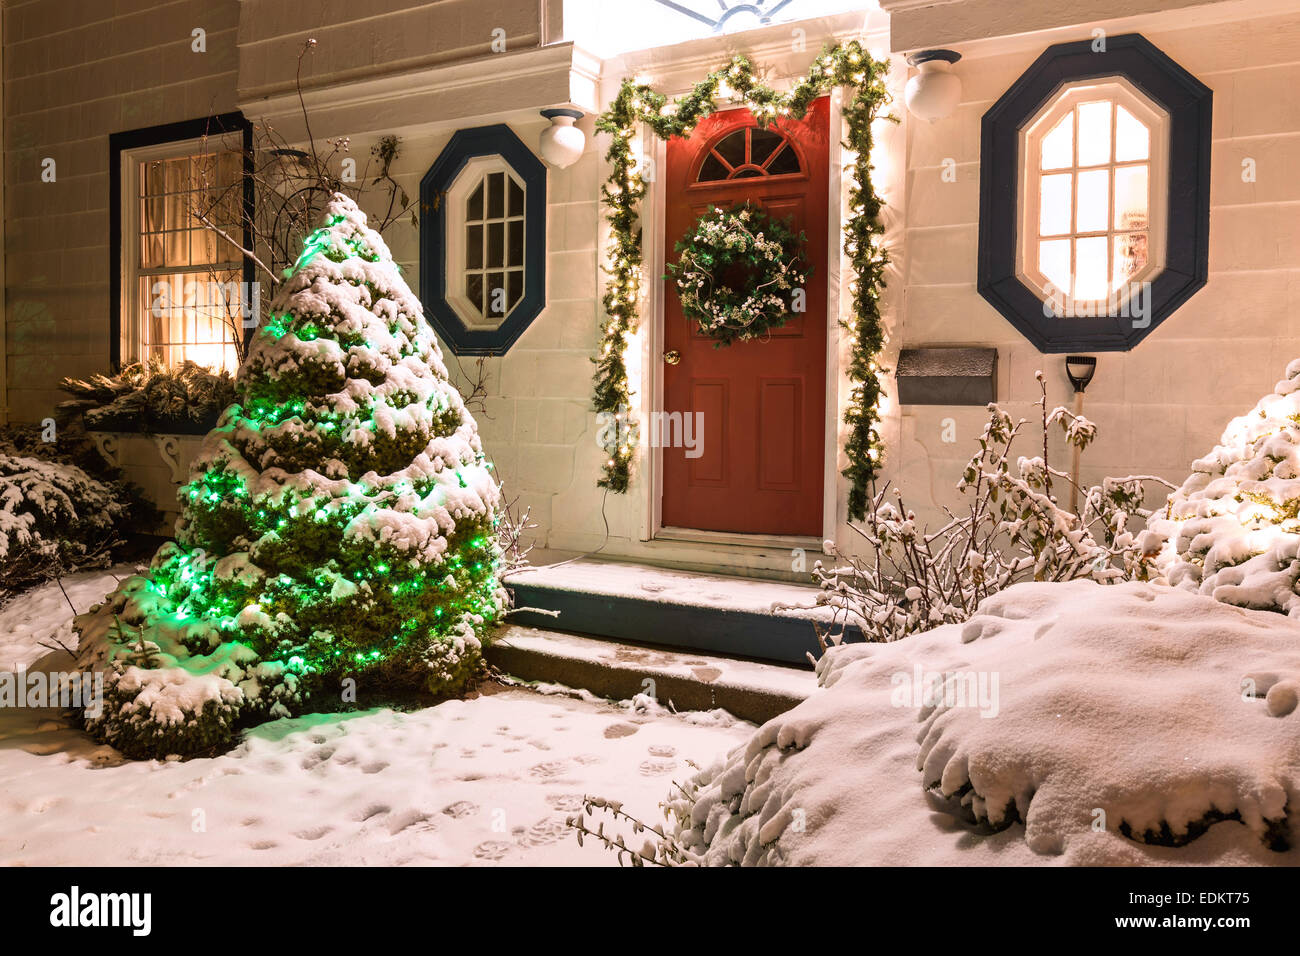 the front door of a snow covered family home decorated for christmas stock image - Front Door Entrance Christmas Decoration